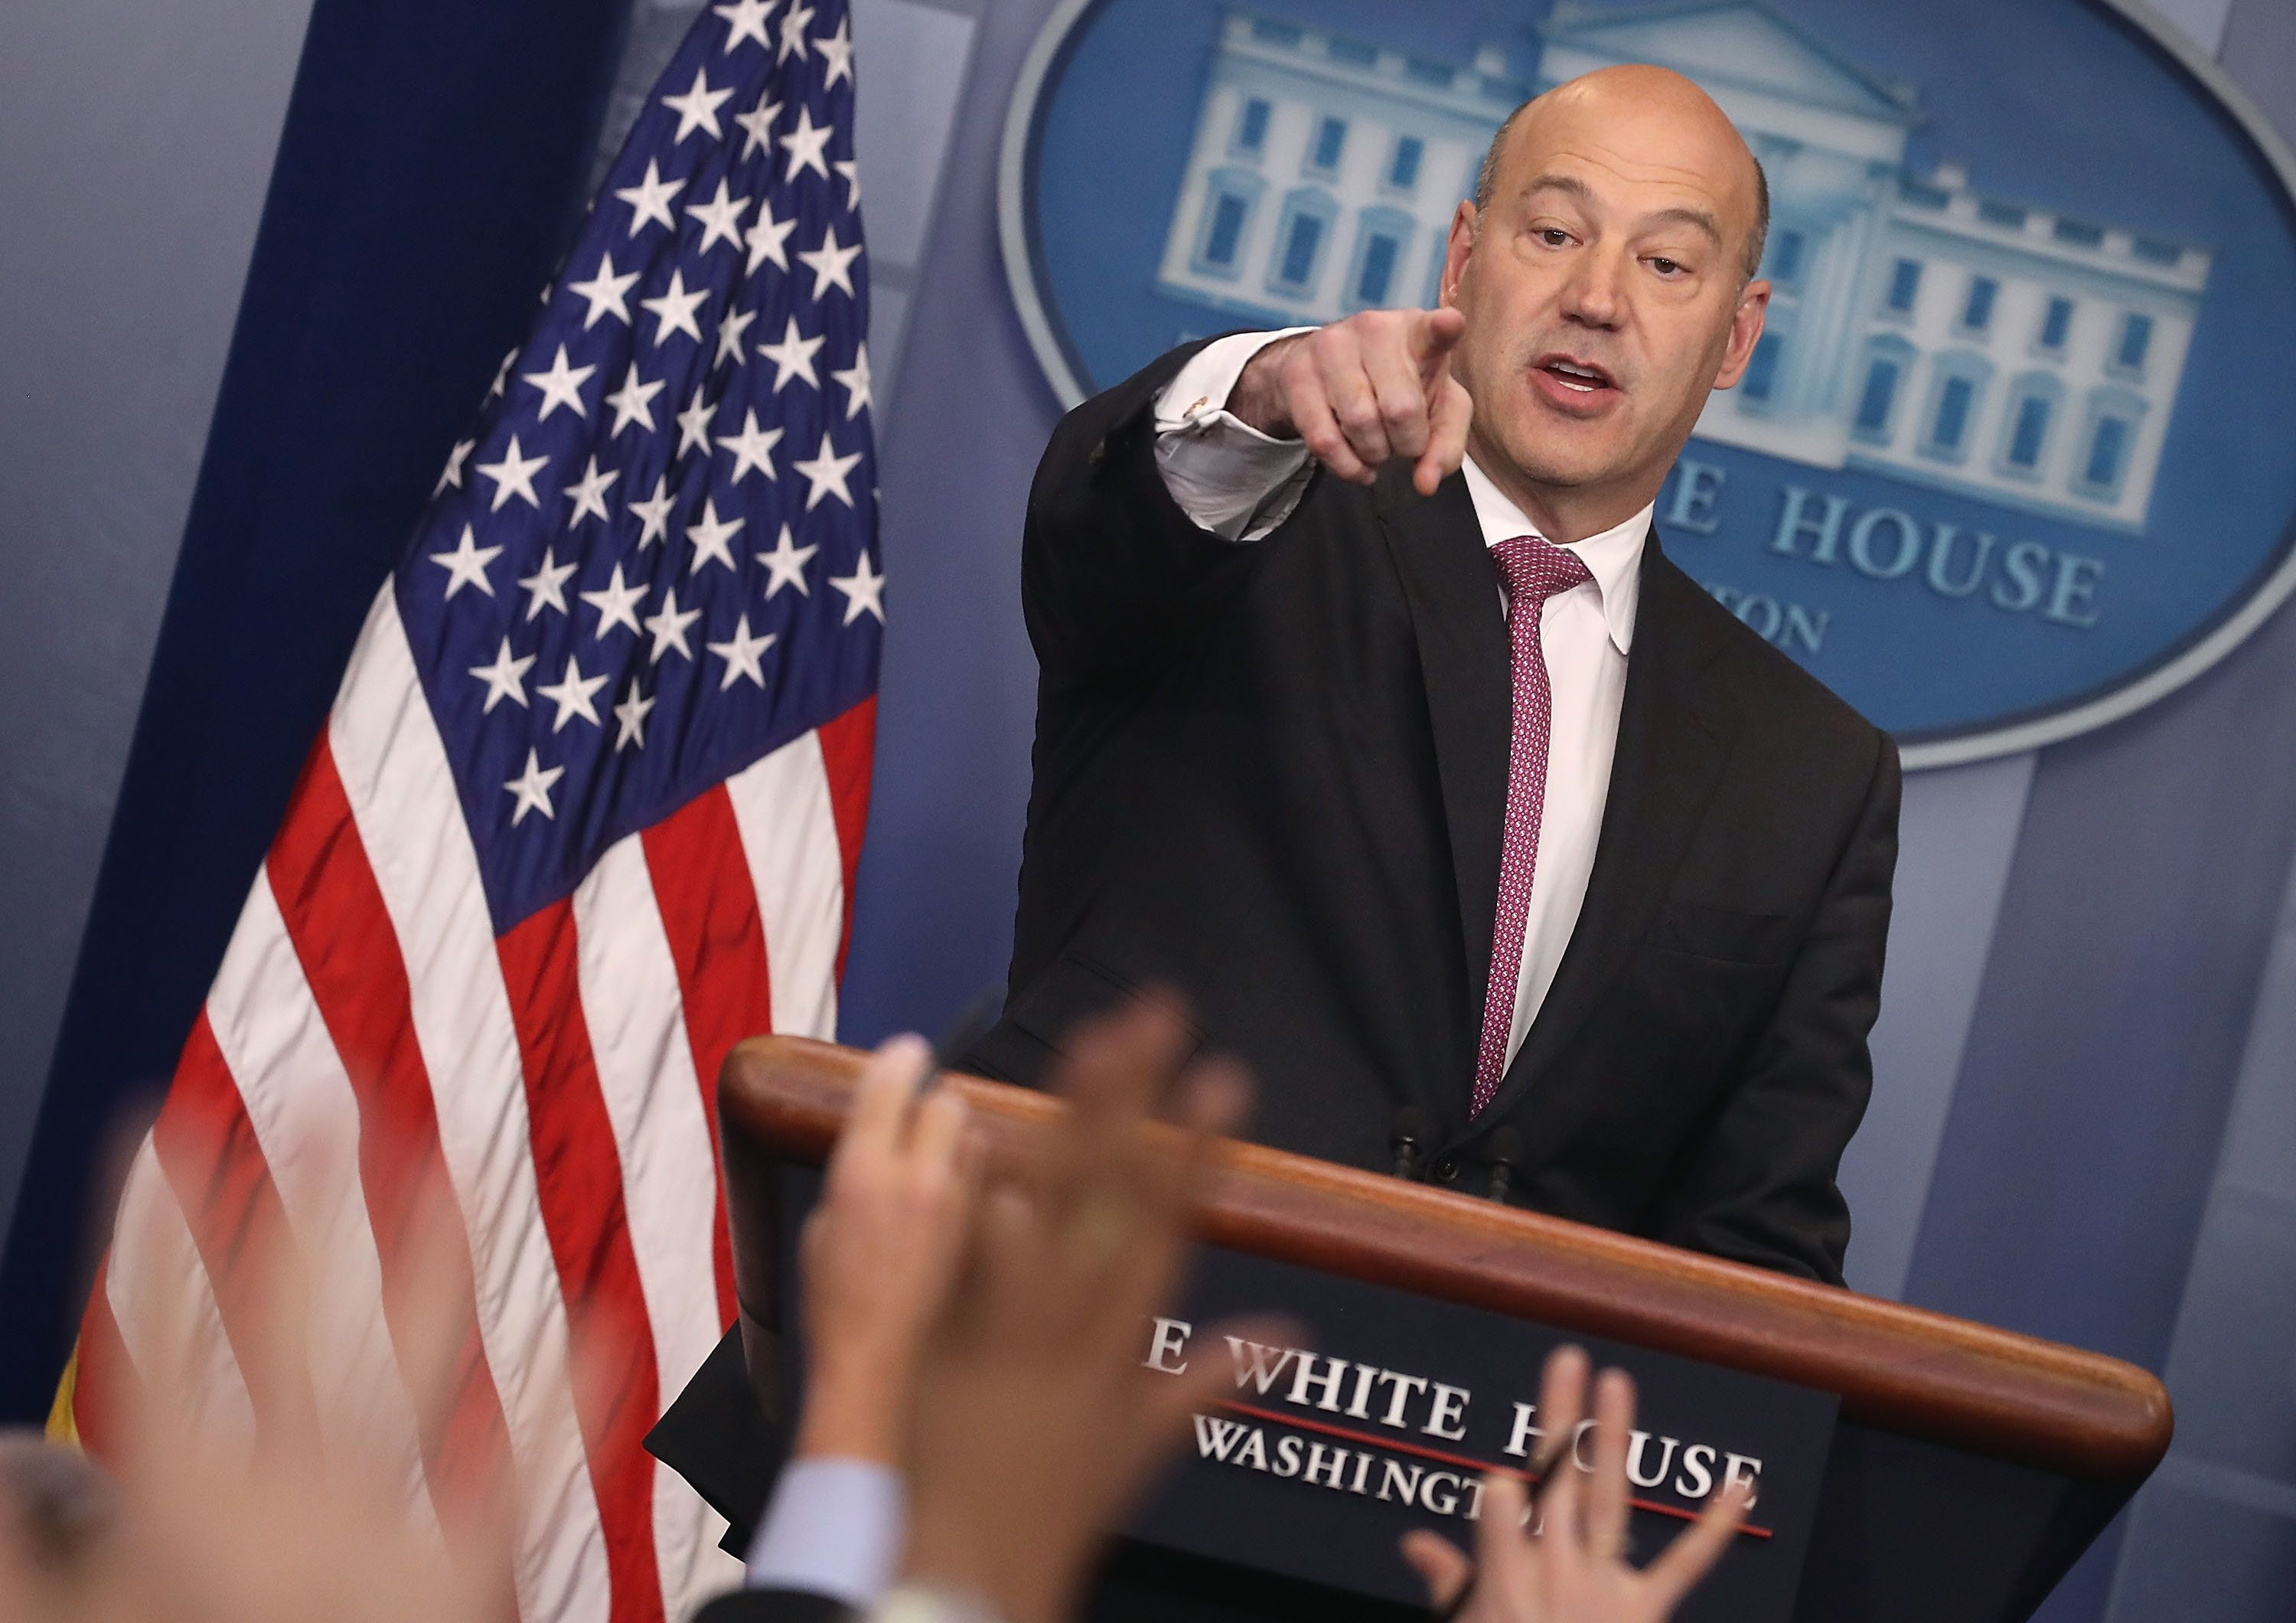 WASHINGTON, DC - JANUARY 23:  Gary Cohn, White House Economic Advisor, takes questions from the media during a briefing on President Donald Trump's upcoming trip to the World Economic Forum later this week in Davos Switzerland, at the White House on January 23, 2018 in Washington, DC.  (Photo by Mark Wilson/Getty Images)